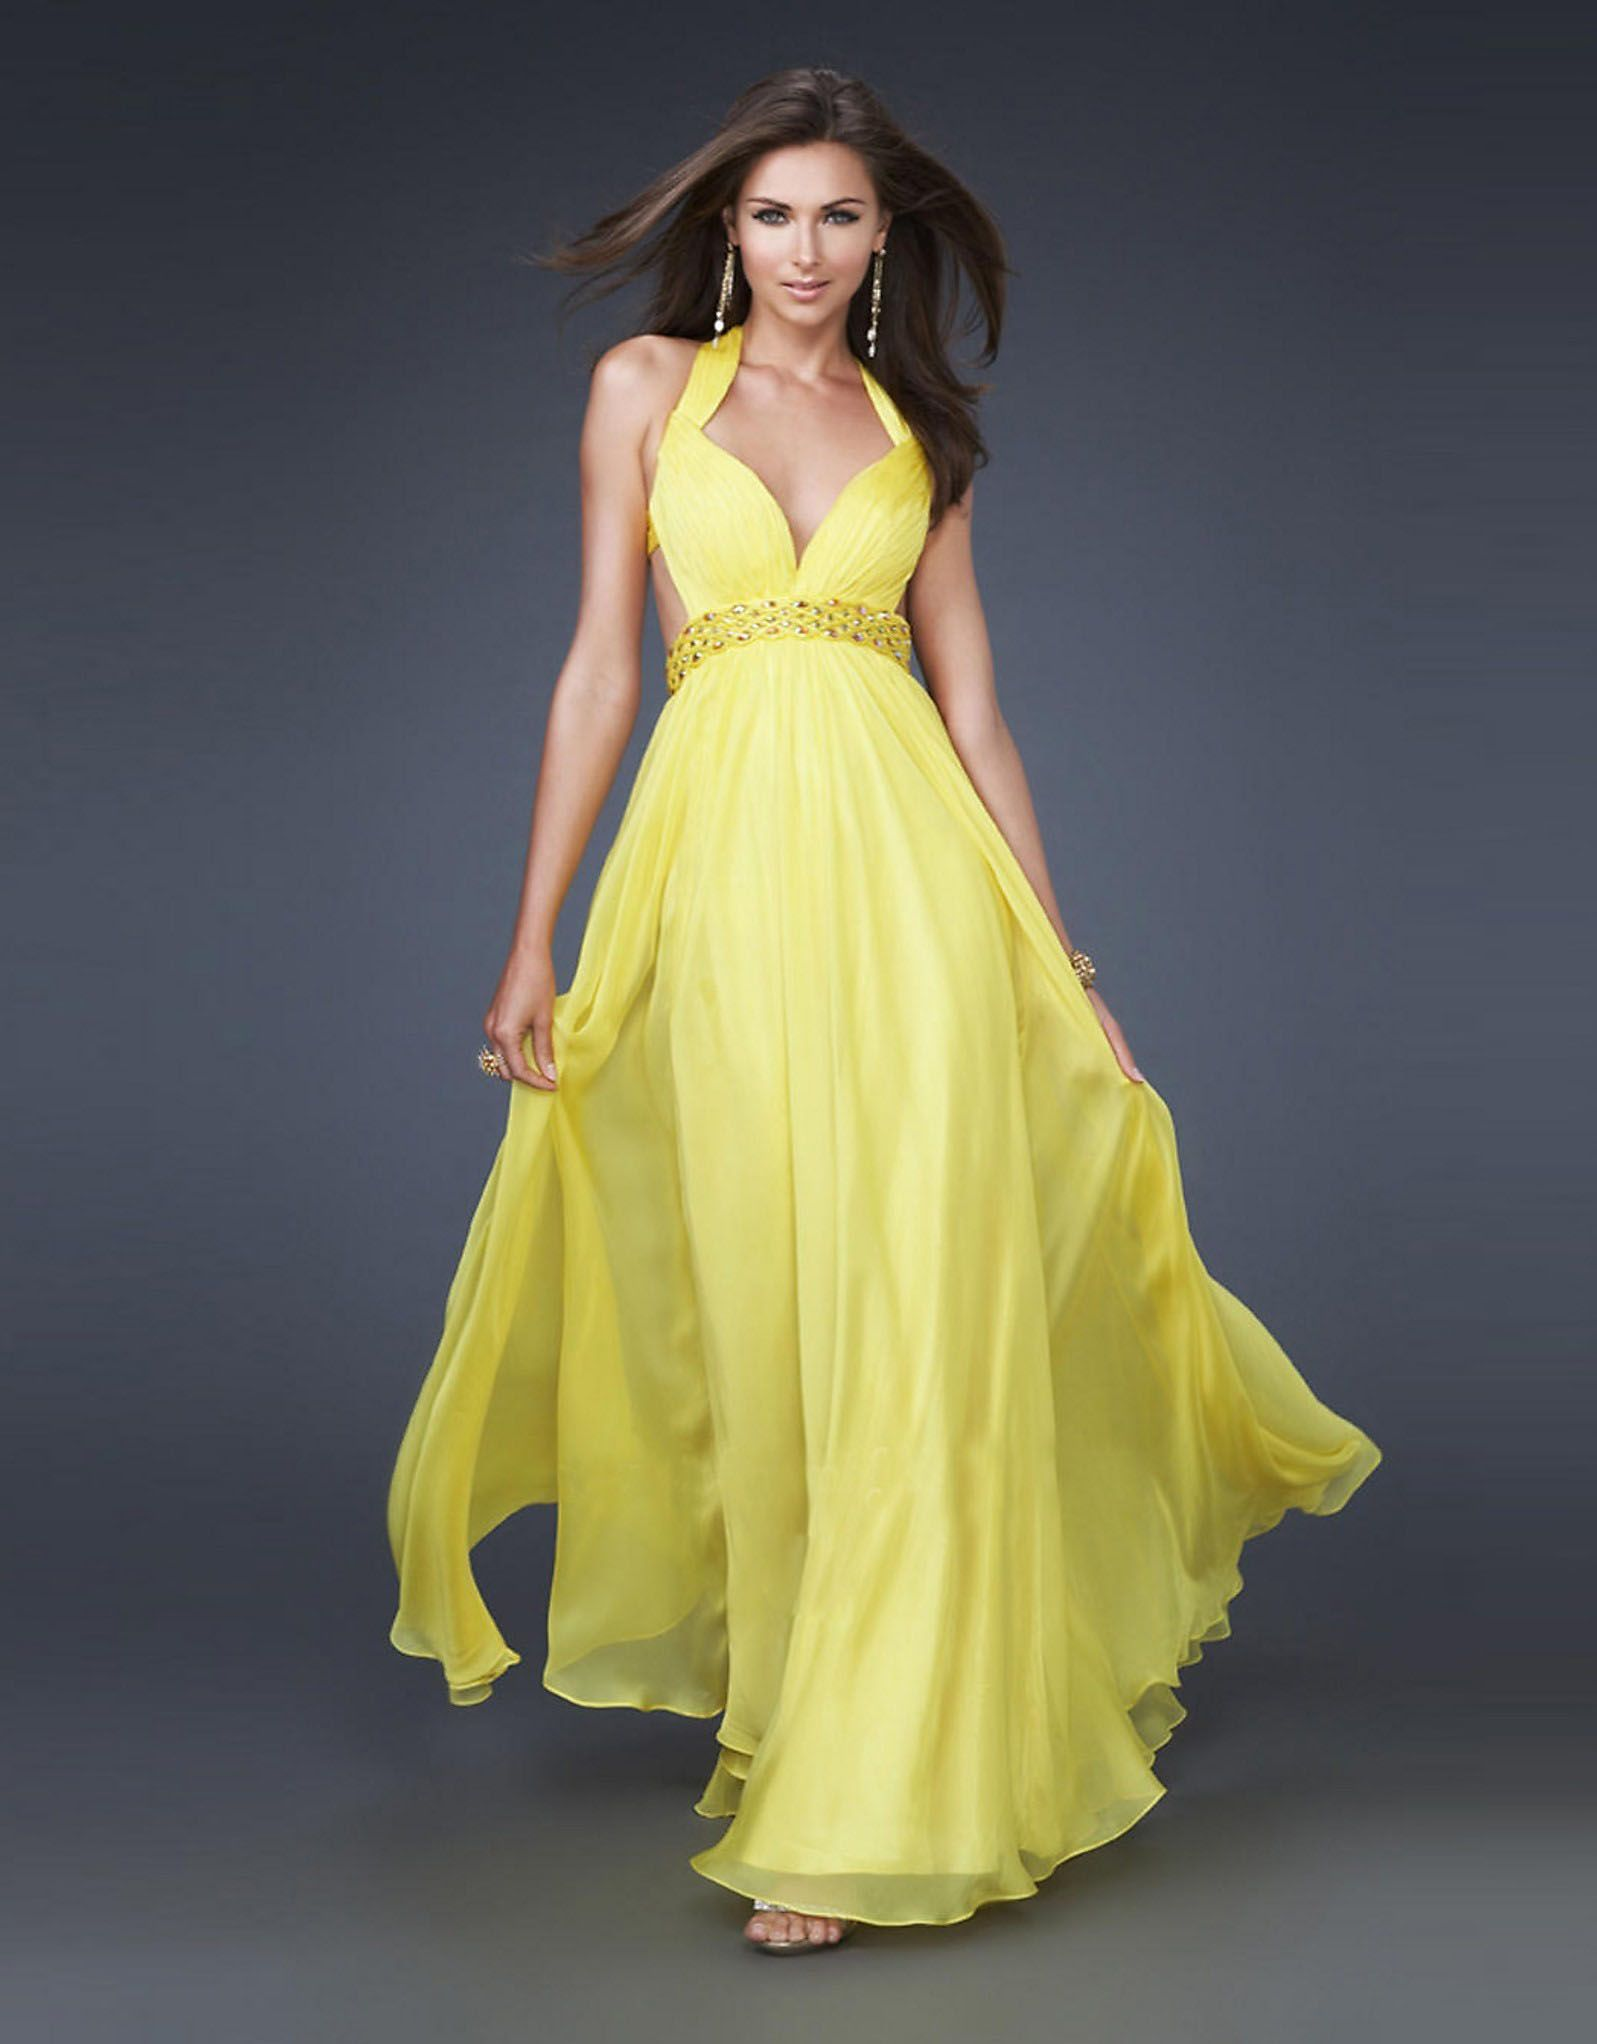 yellow dresses | Home Special Occasion Dresses Prom Dresses Prom ...